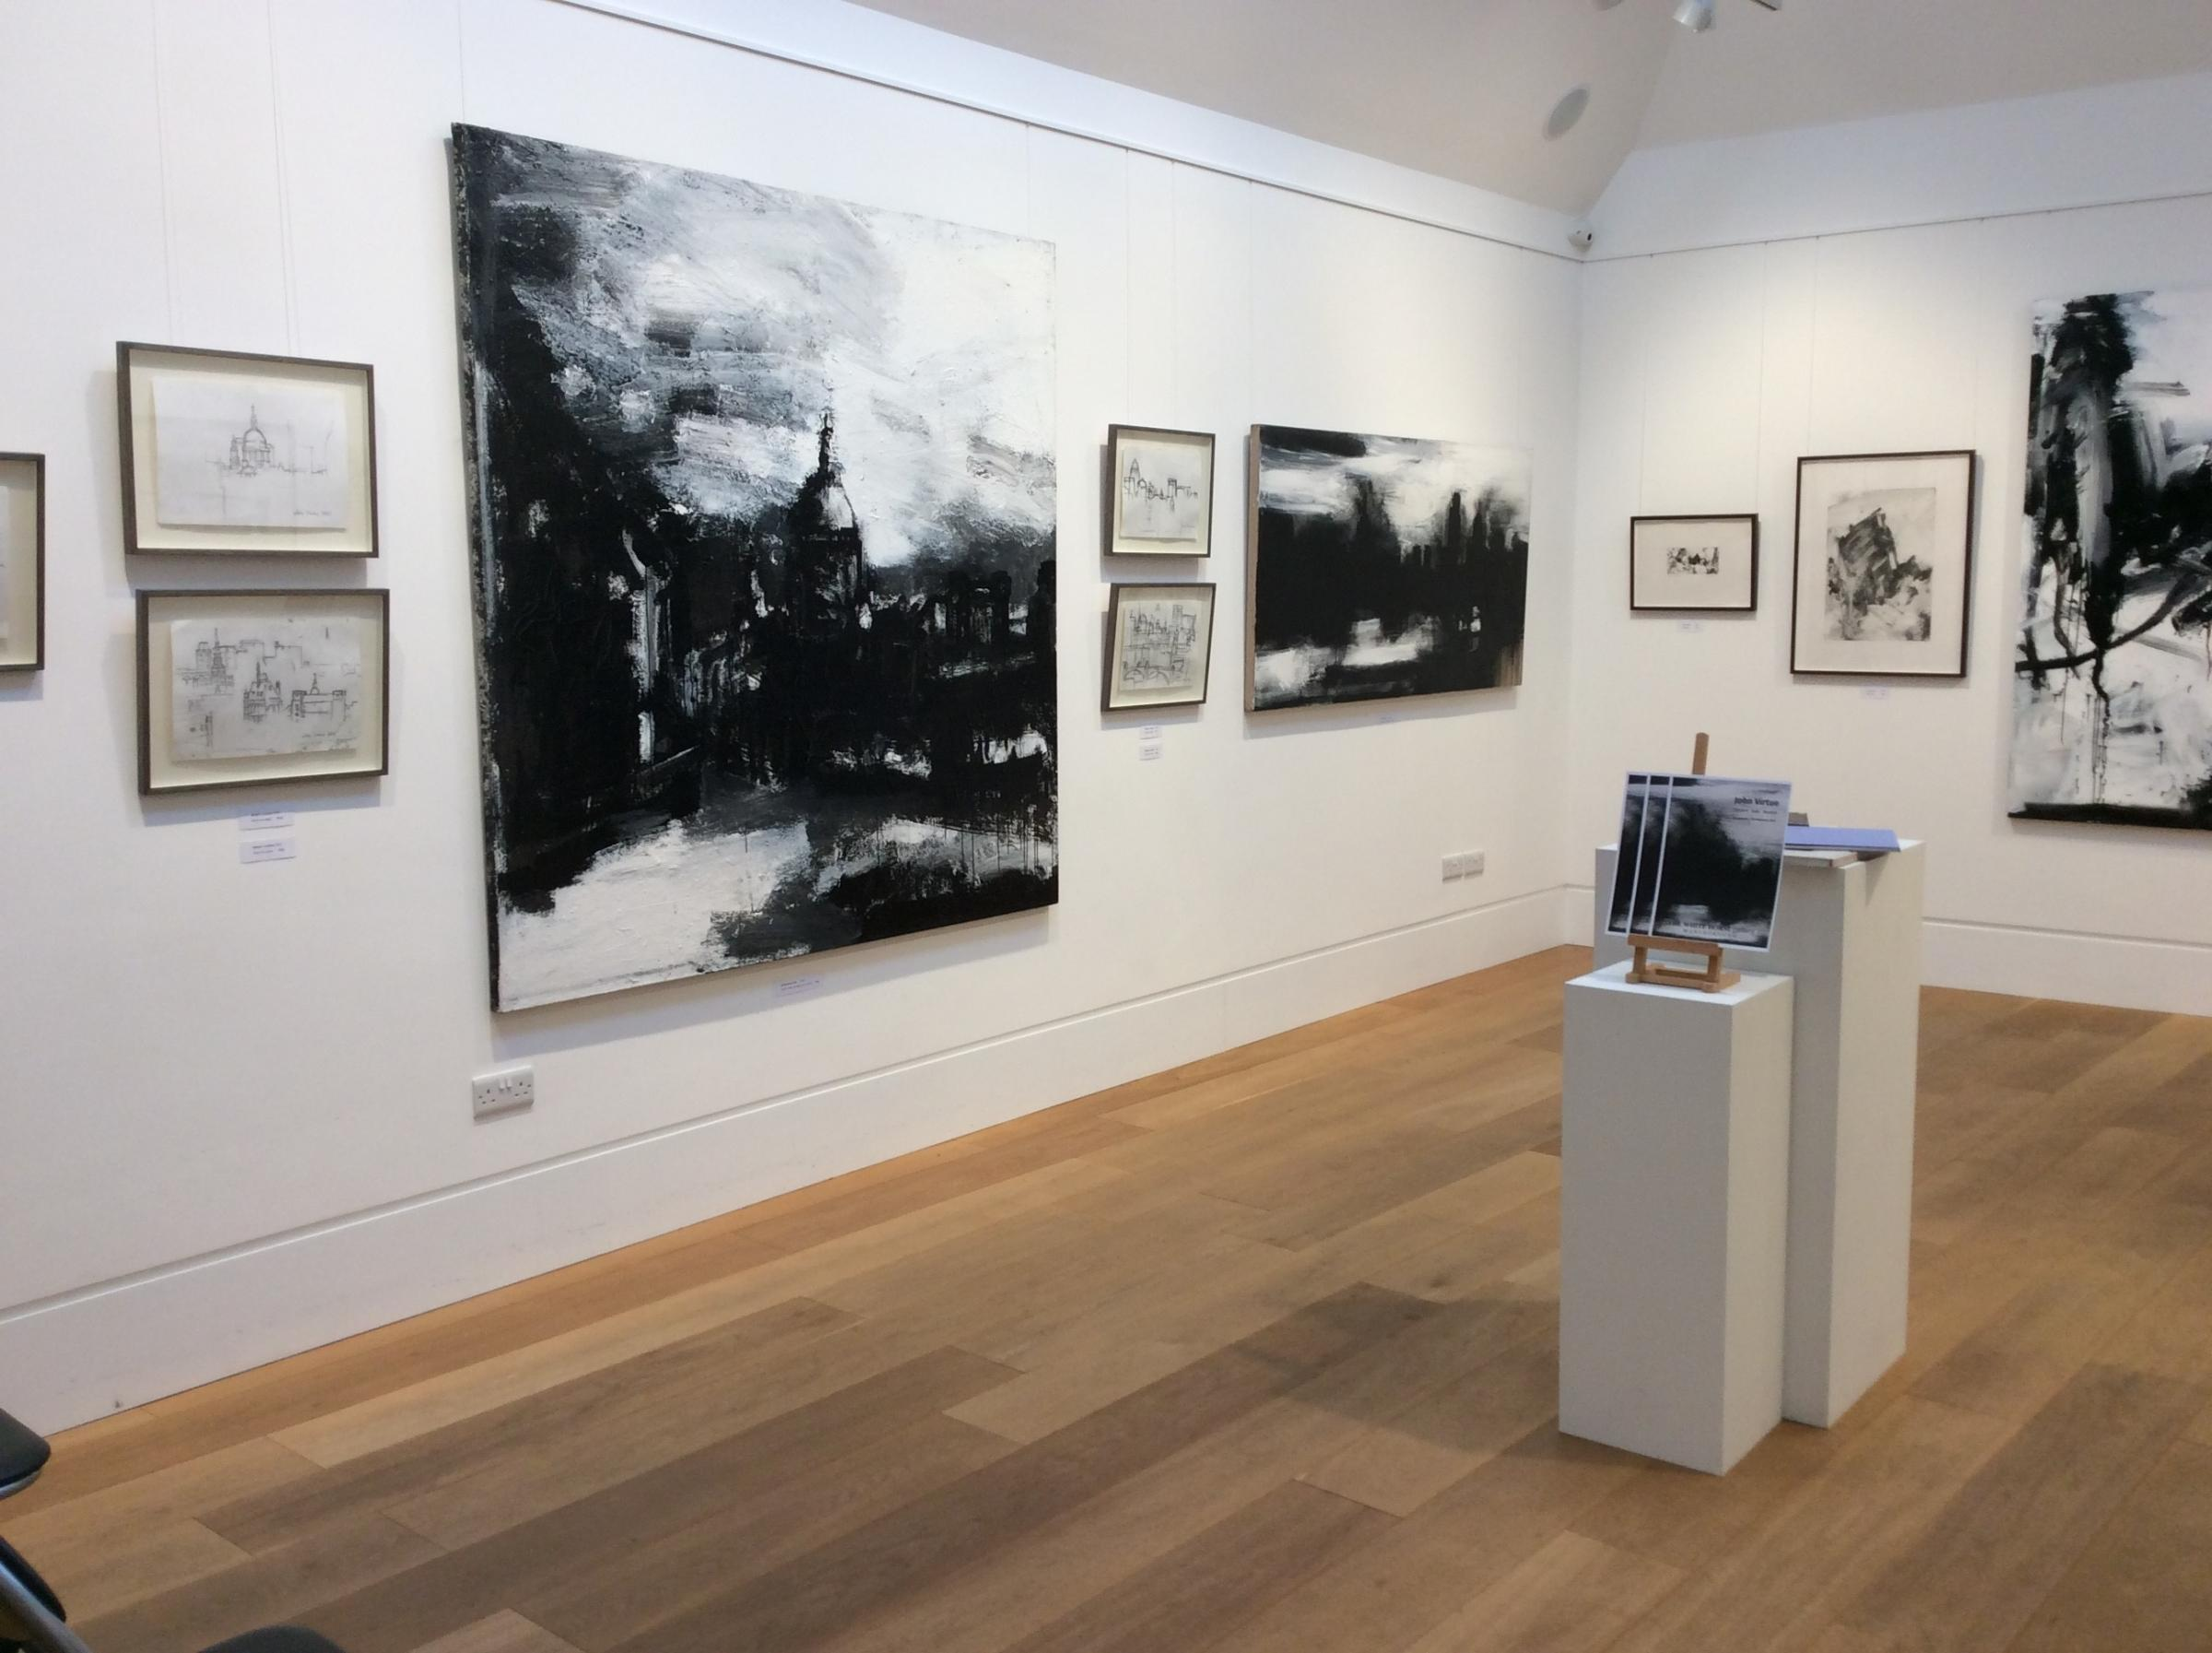 John Virtue's work is being exhibited at the Whitehorse Gallery in Marlborough